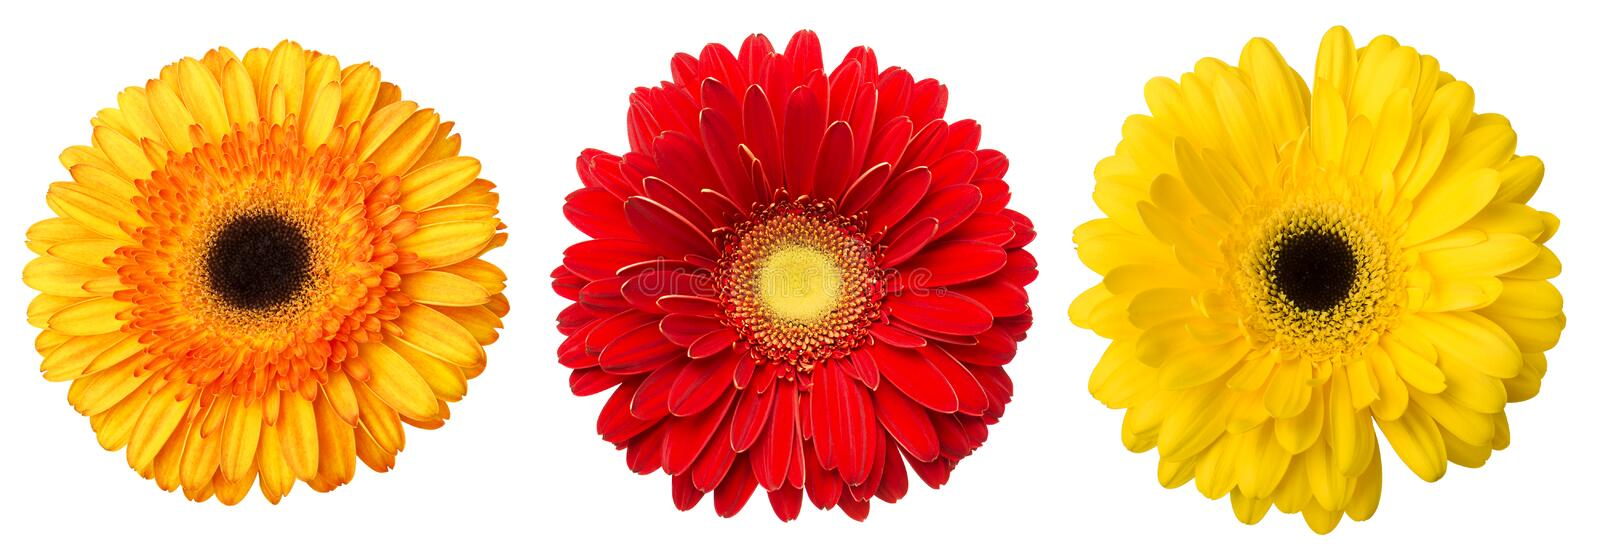 Big Selection of Colorful Gerbera flower Gerbera jamesonii Isolated on White Background. Various red, yellow, orange, pink stock photo